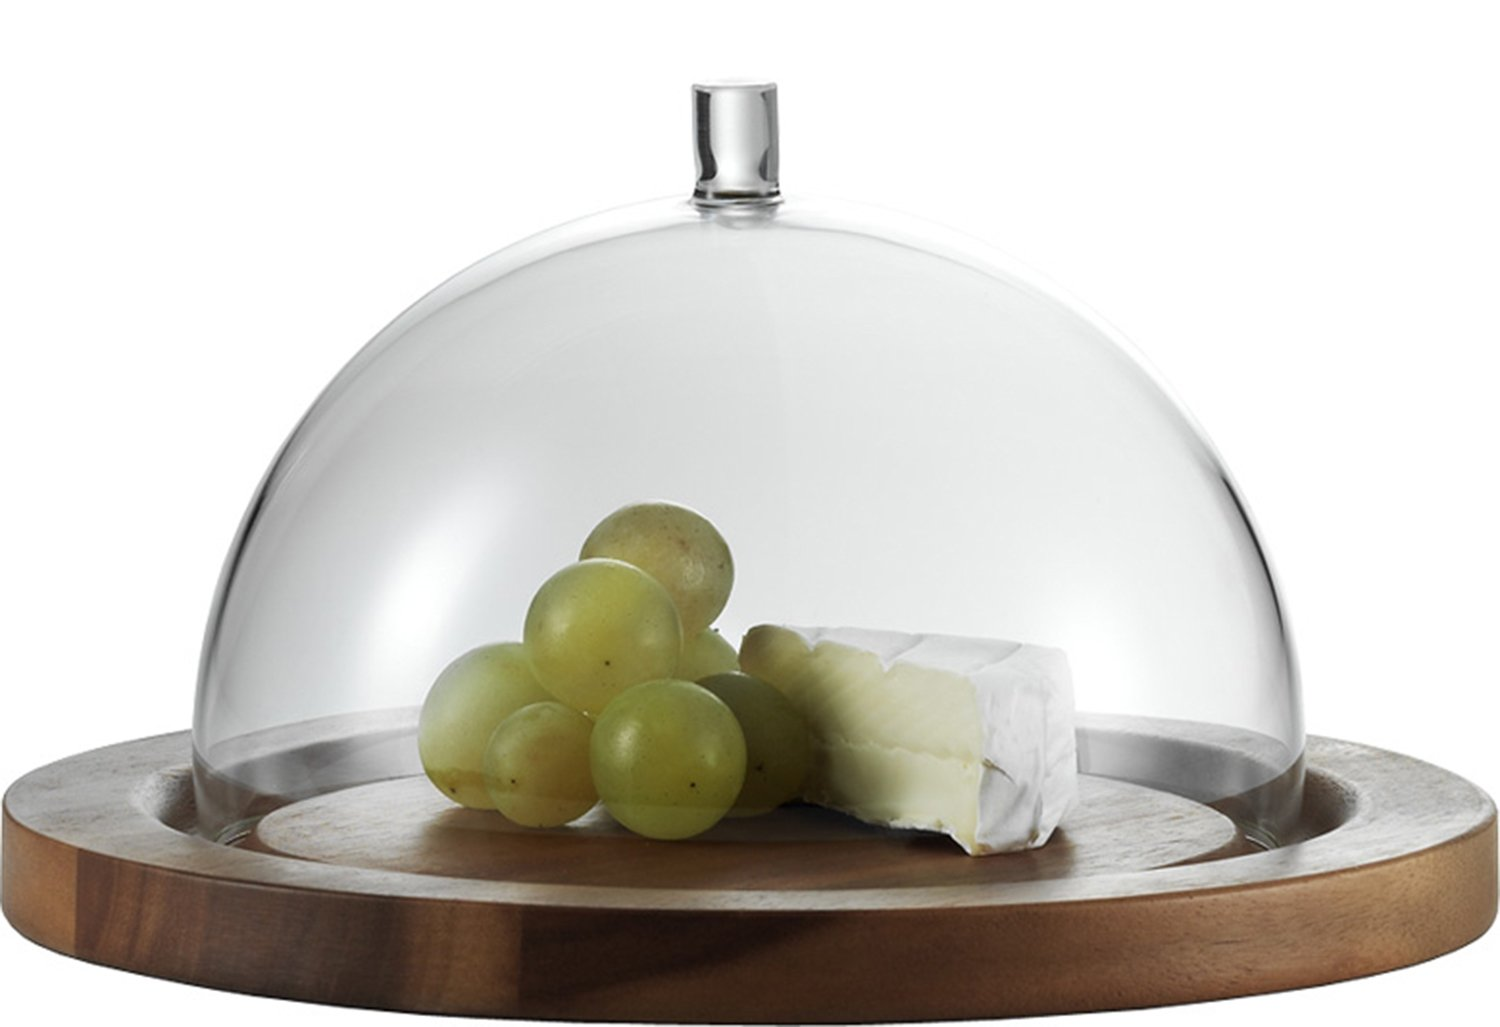 Jenaer Glas Concept Storage Collection Cheese Dome with Acacia Plate, 9.5-Inch